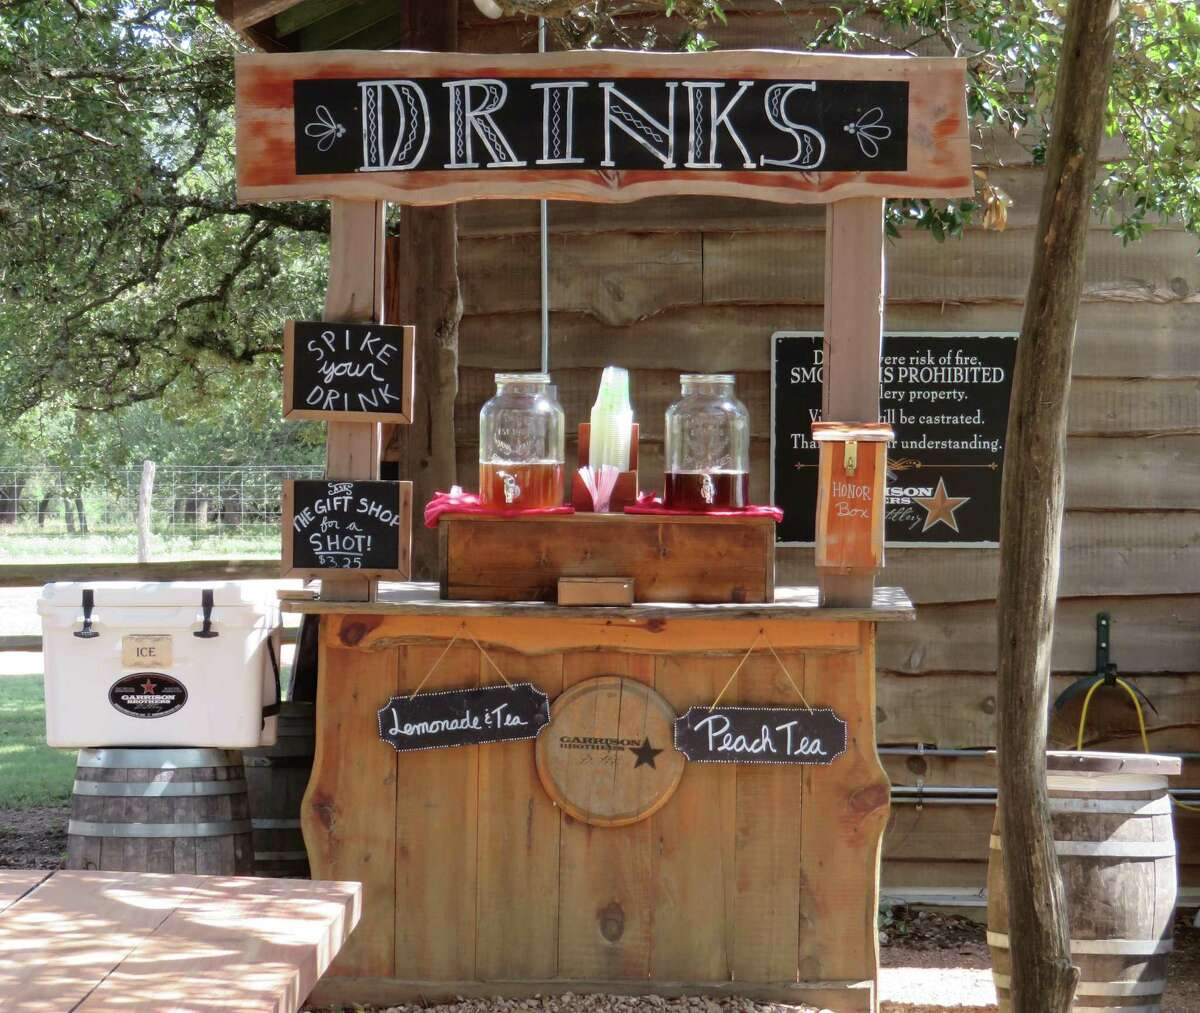 Garrison Brothers Distillery near Hye is turning out some good sipping whisky, which makes flights a popular choice at the ranch a few miles south of Highway 290. But if you like to spike your lemonade tea or peach tea with some smooth spirits, you can get a shot inside the gift shop.